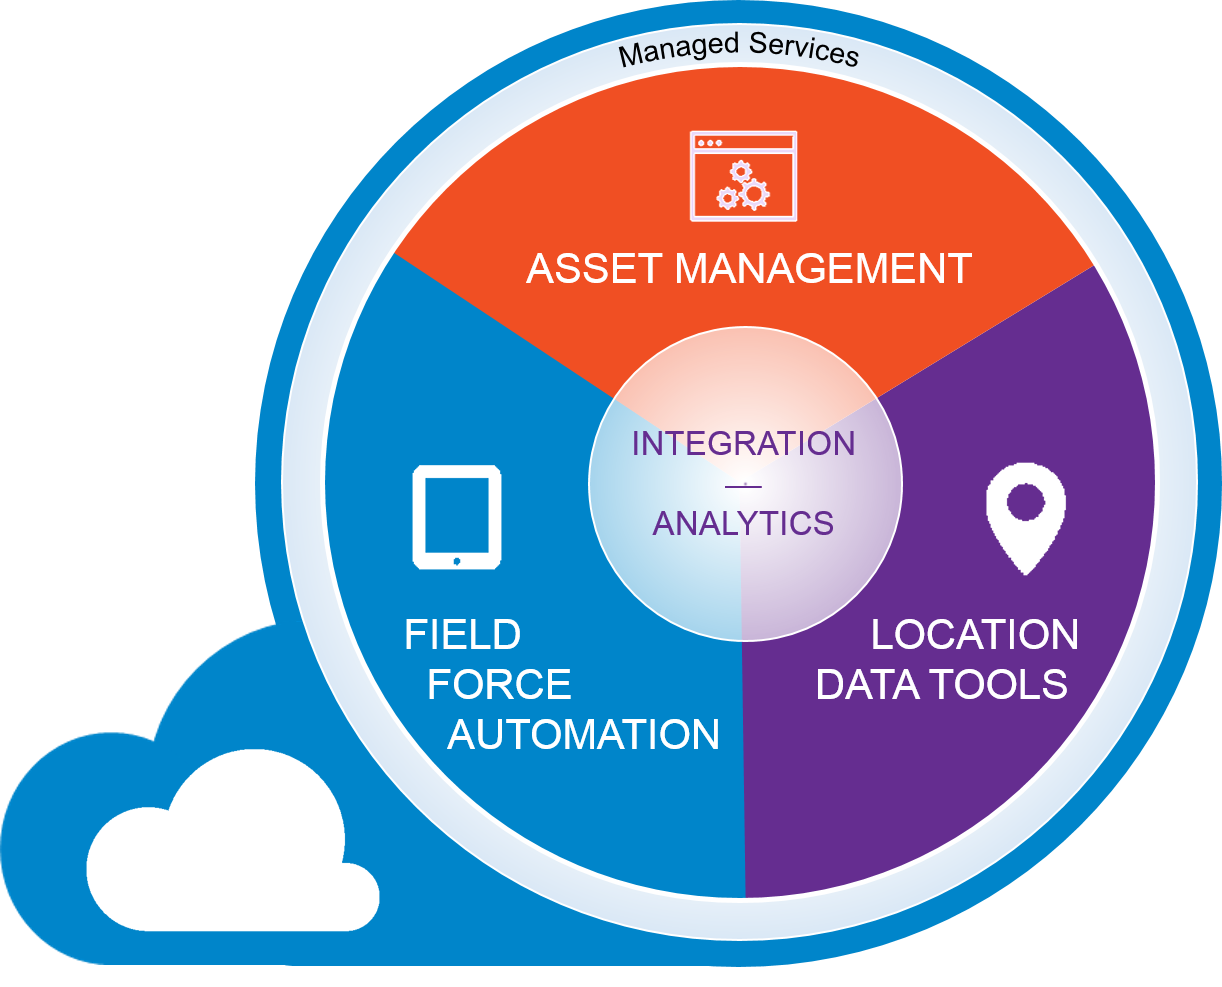 Enterprise Asset Management as a Service